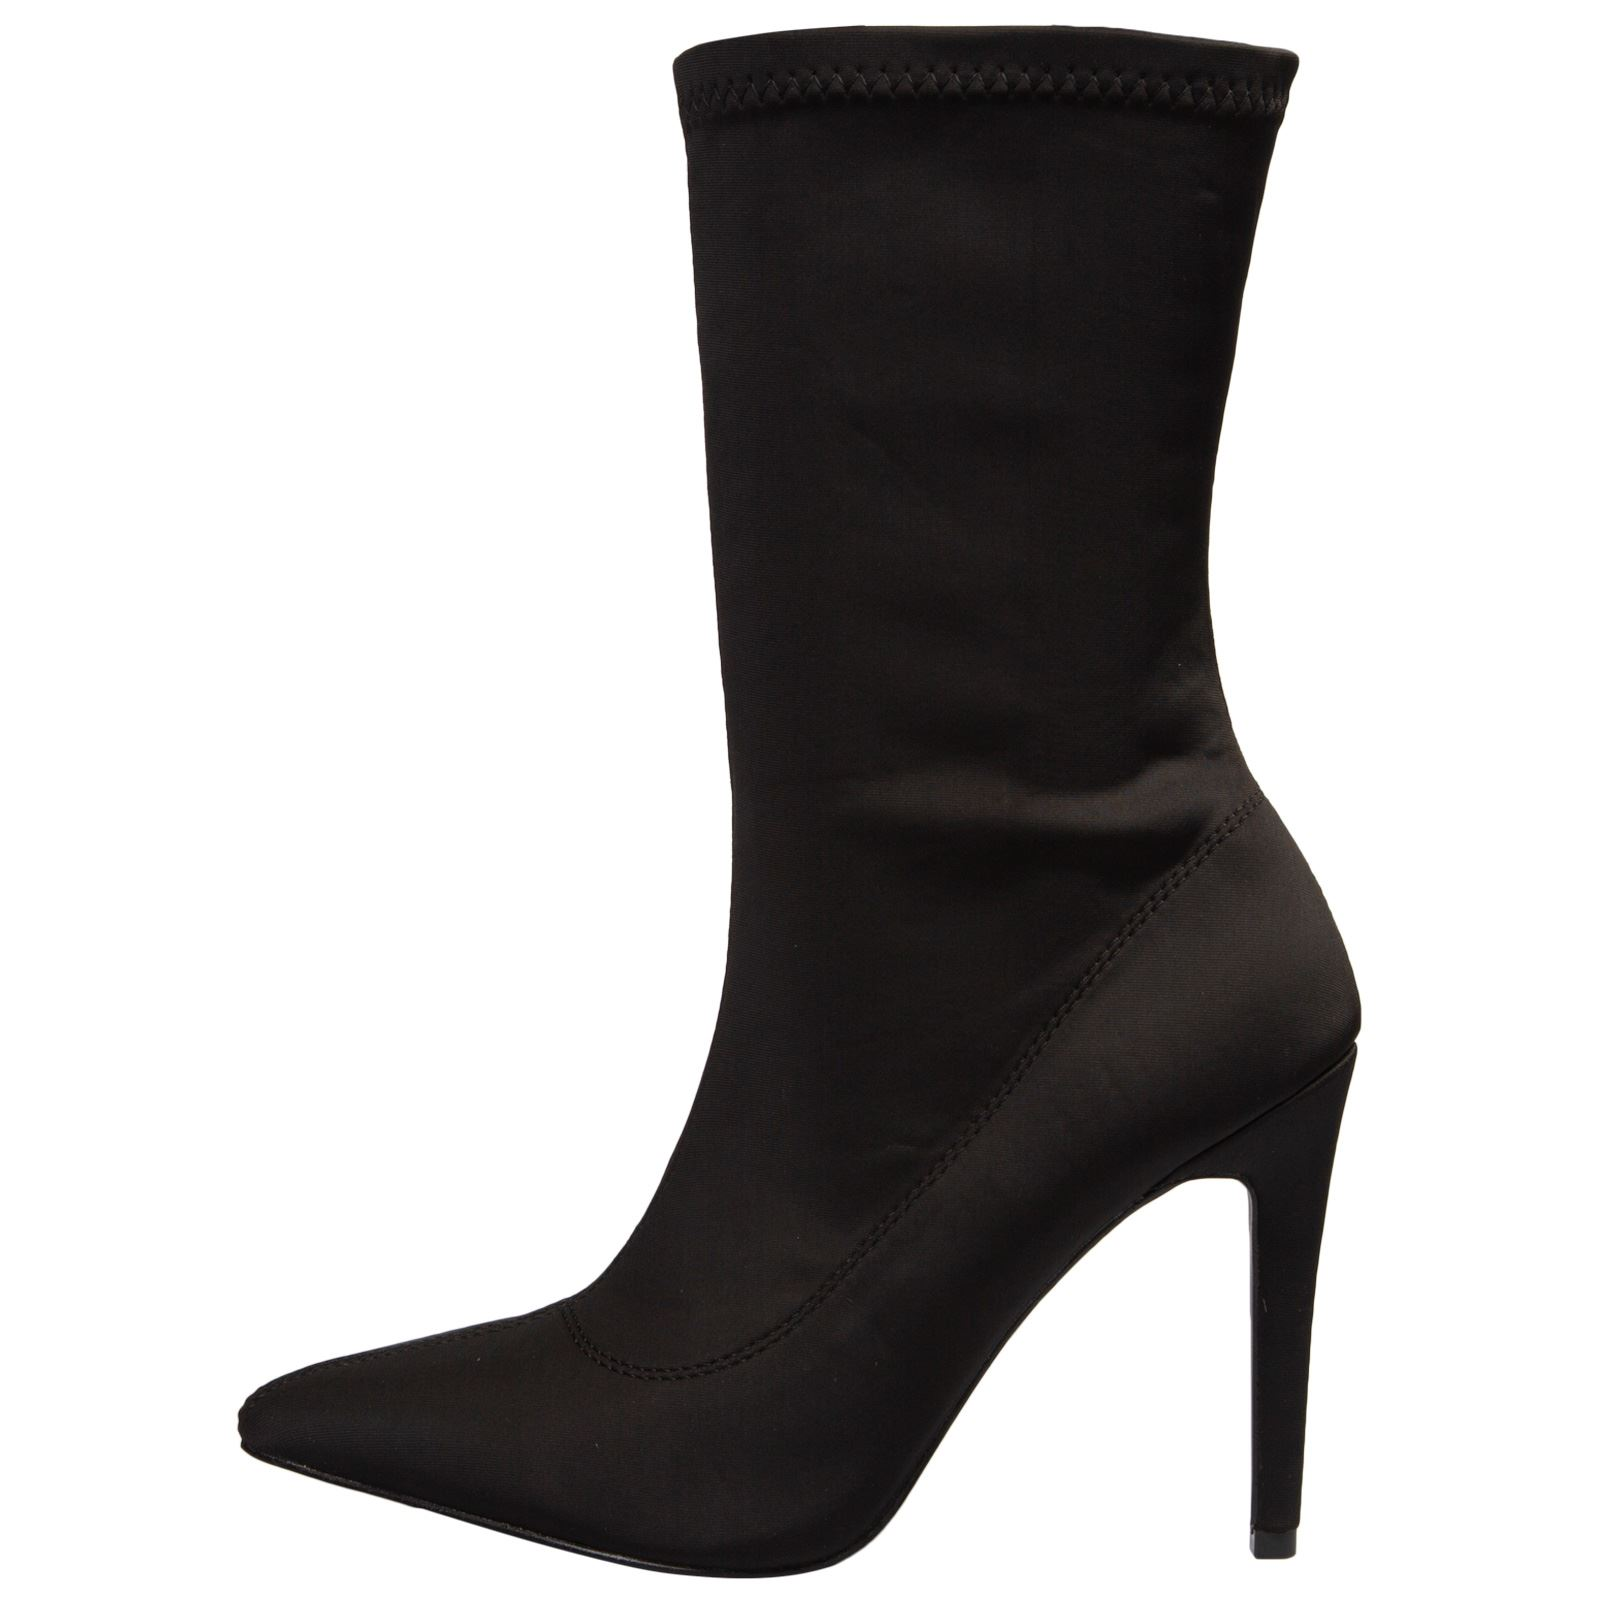 NEW-WOMENS-SHOES-LADIES-ANKLE-BOOTS-ZIP-UP-STRETCH-CALF-STILETTO-FASHION-CASUAL thumbnail 4